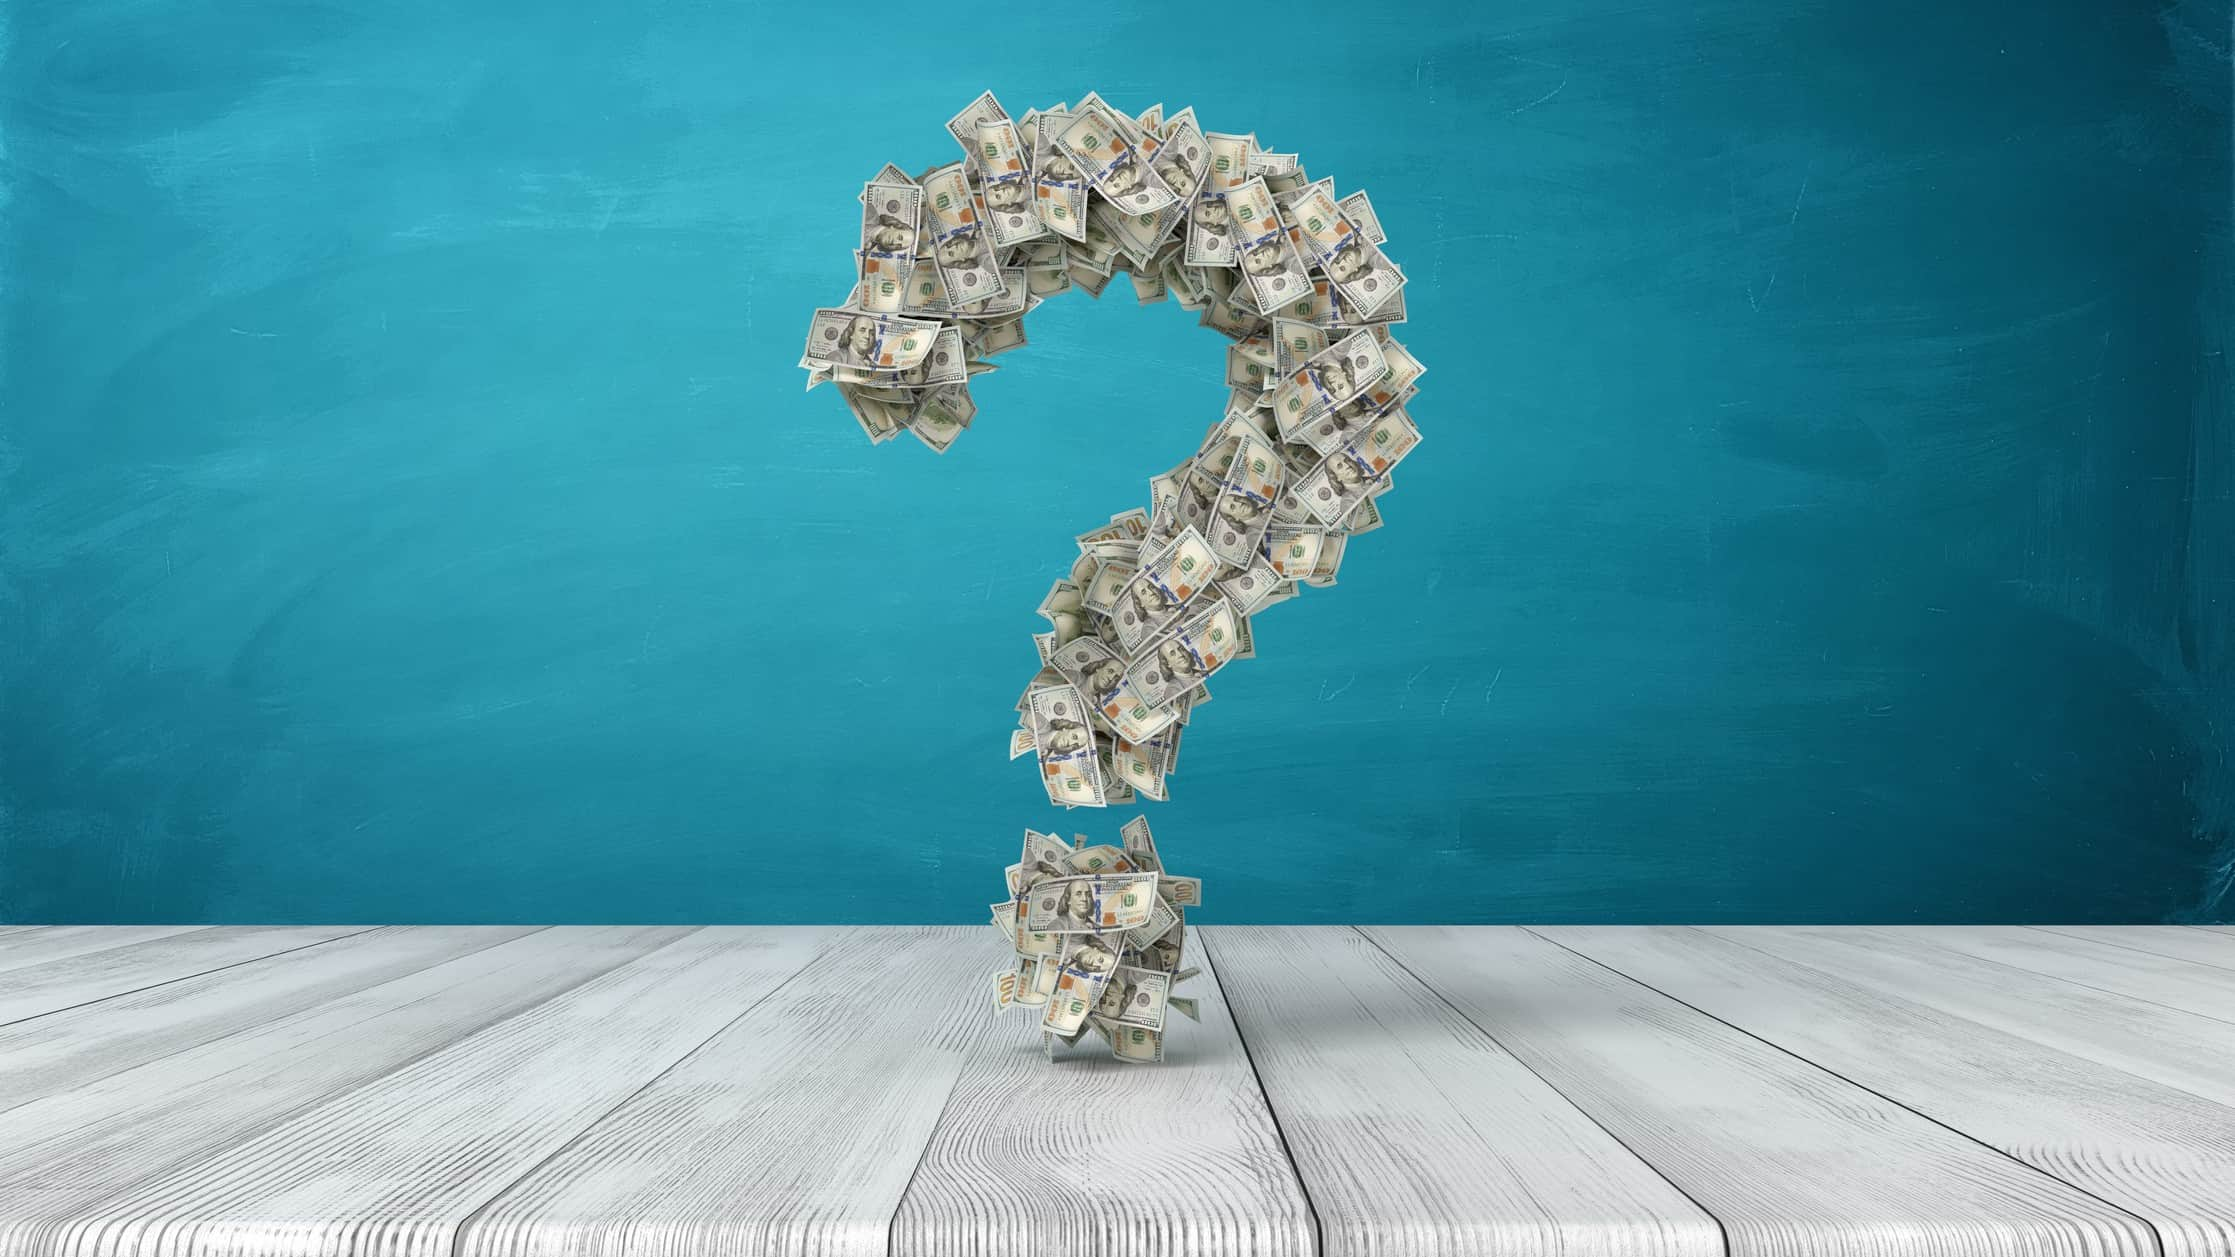 Question mark made up of banknotes in front of blue background